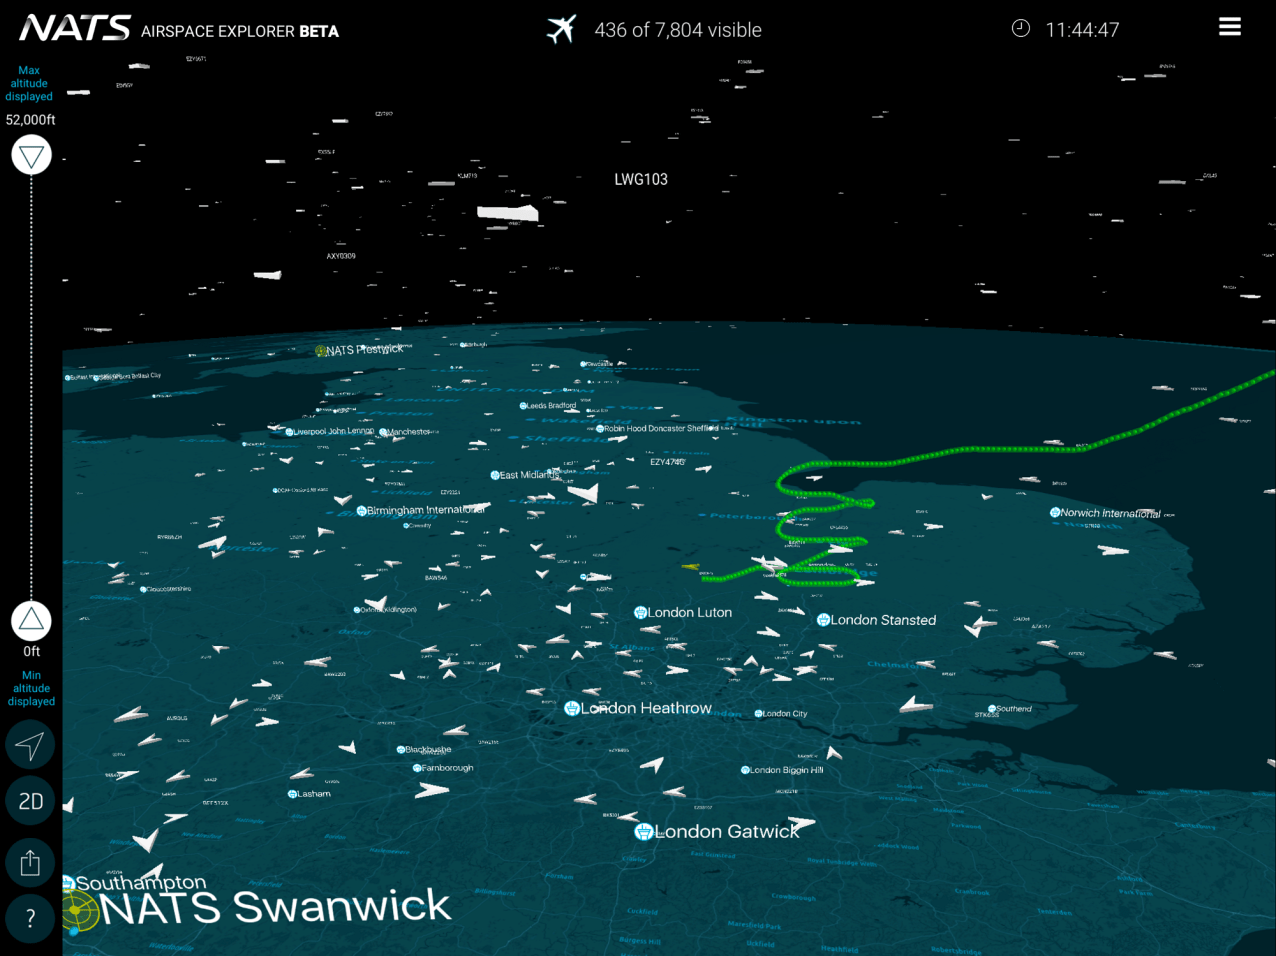 See airport arrivals and departures in 3D